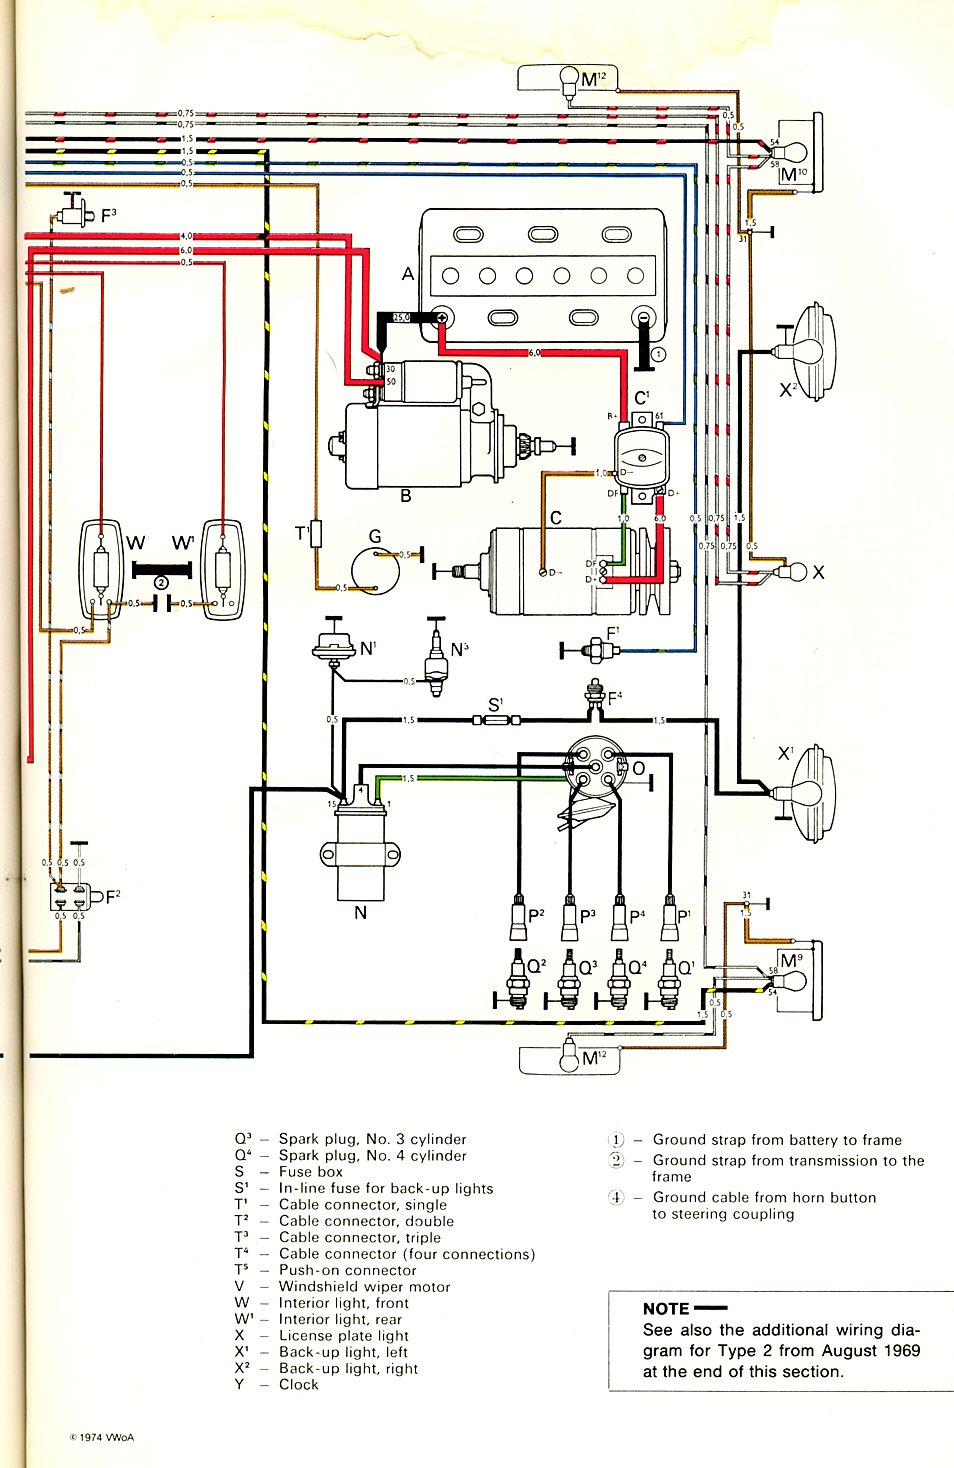 baybus_70b thesamba com type 2 wiring diagrams vw wiring diagrams at webbmarketing.co